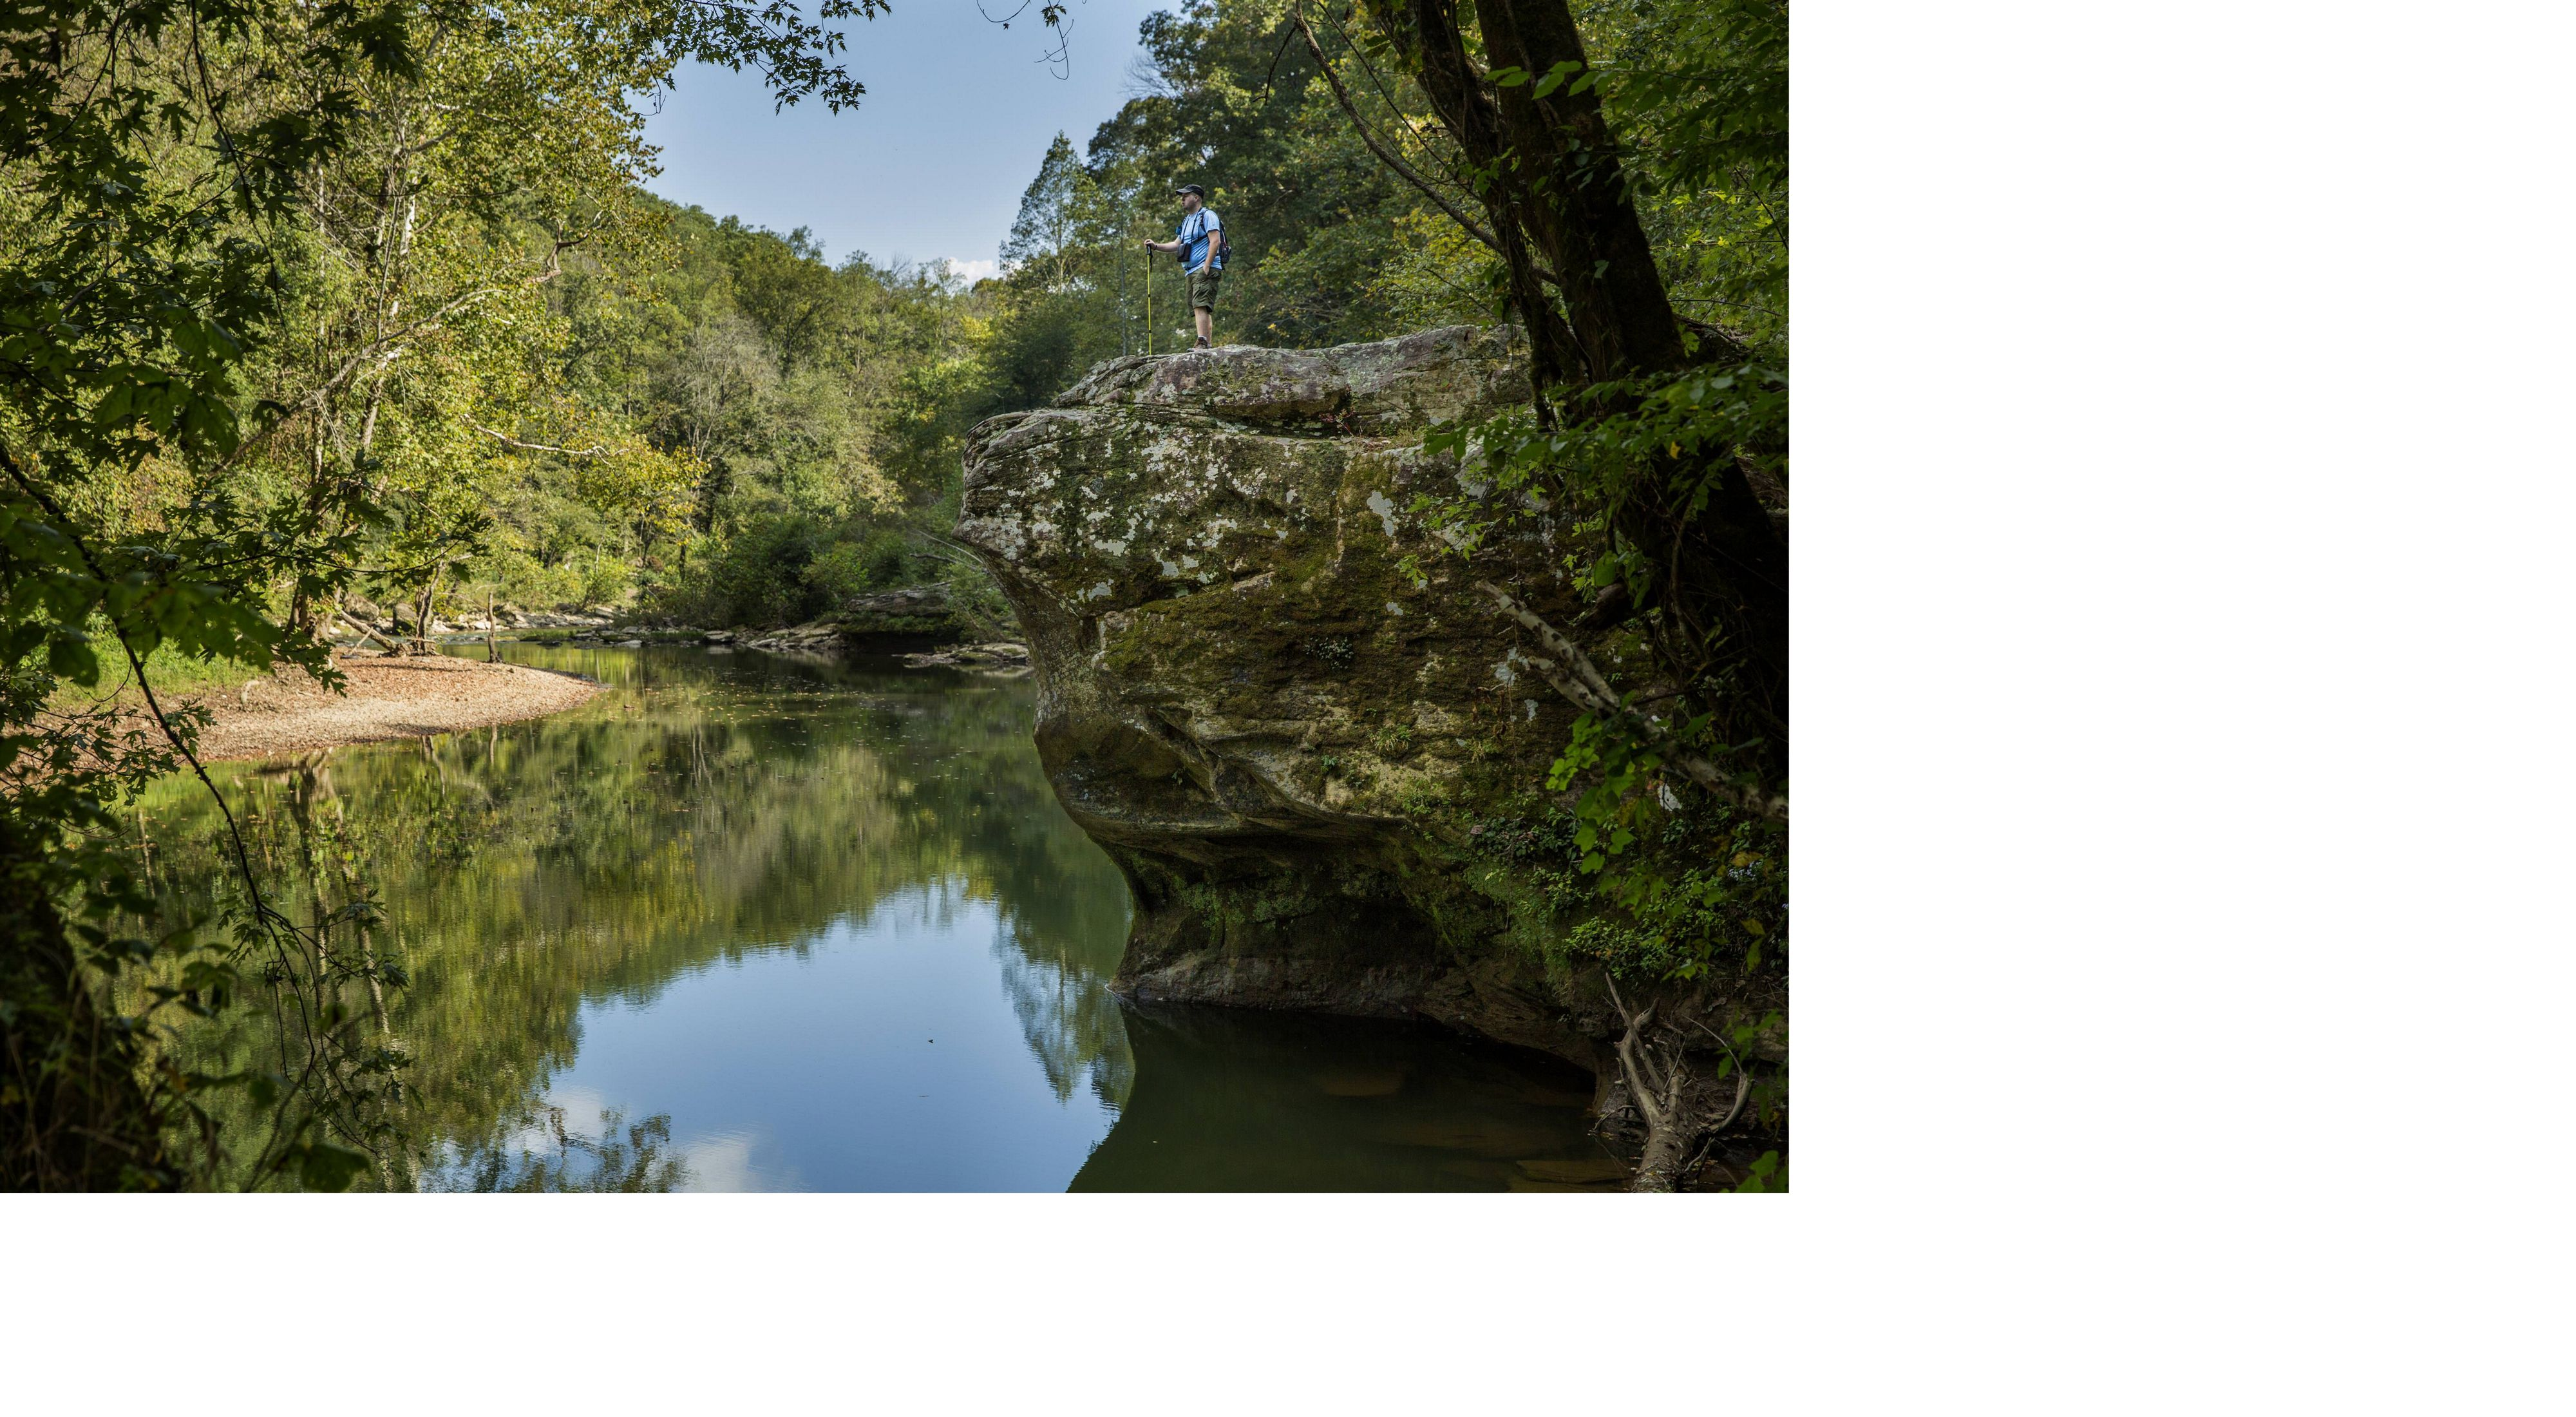 A hiker looks out over the Rockcastle River.